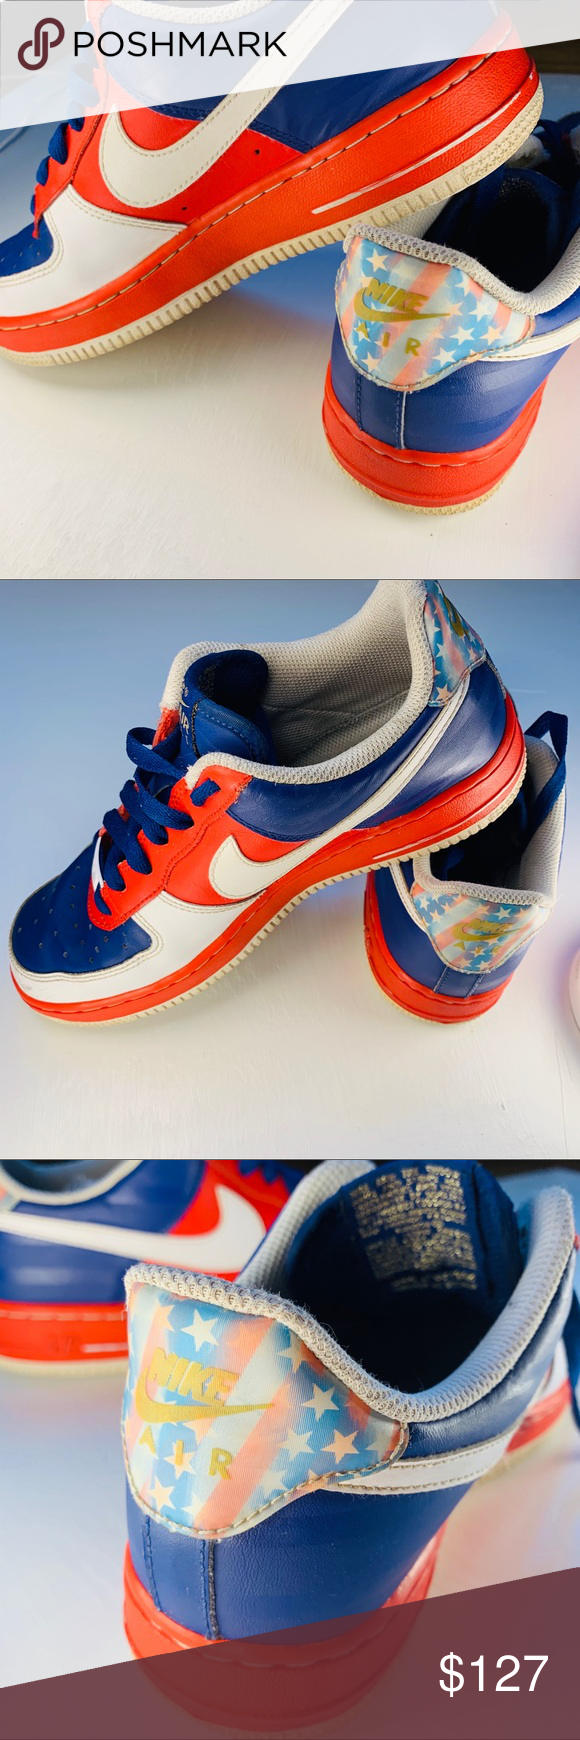 Nike Air Force 1 '82 rare custom made (With images